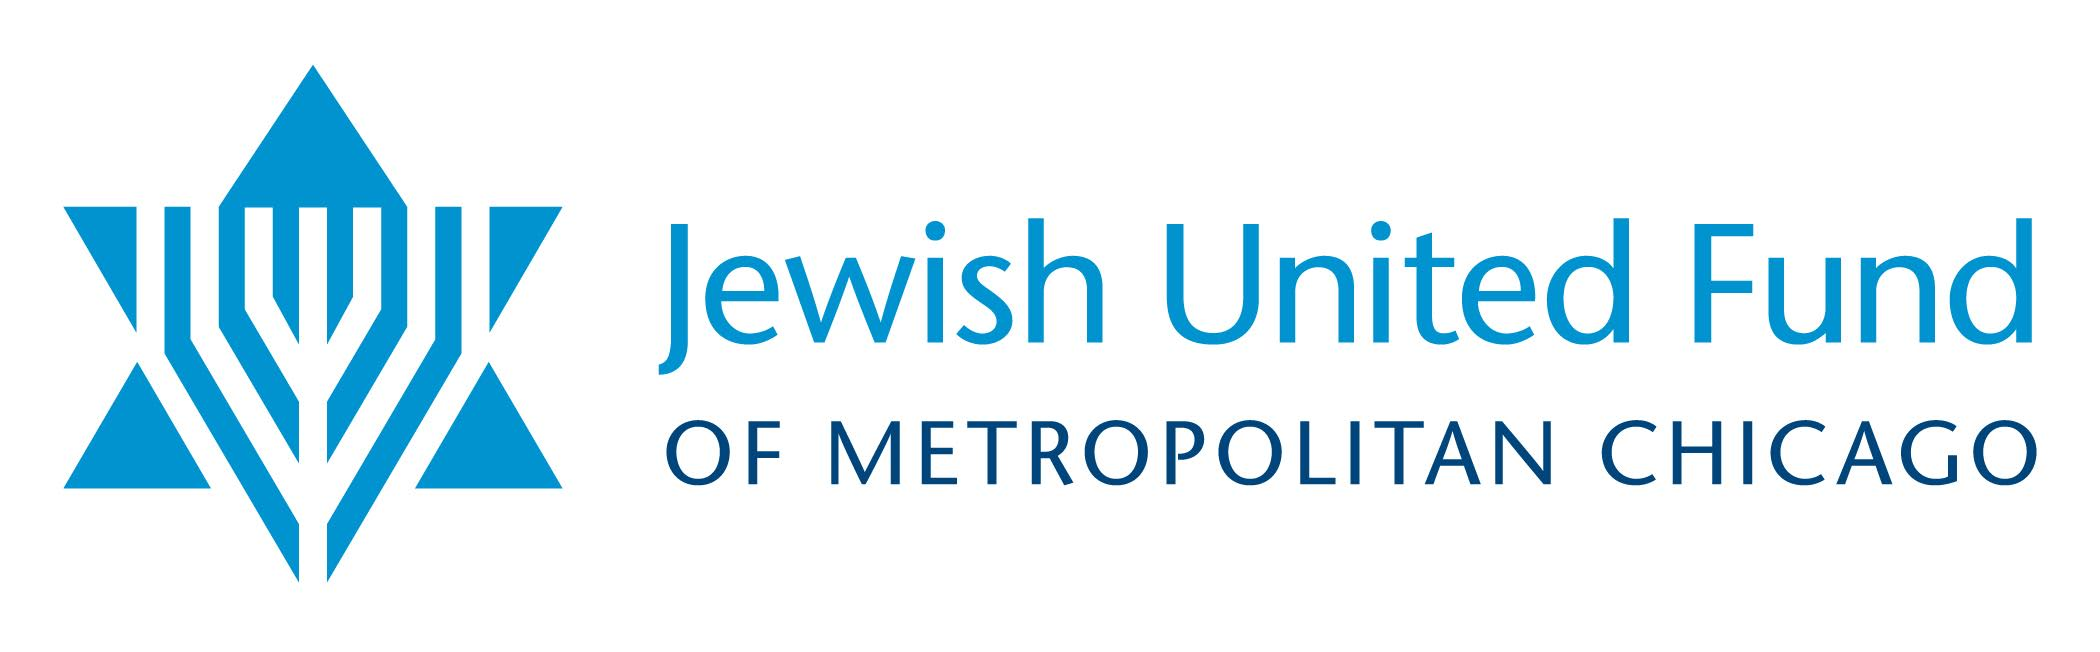 Jewish Federation of Metropolitan Chicago Break Through Fund